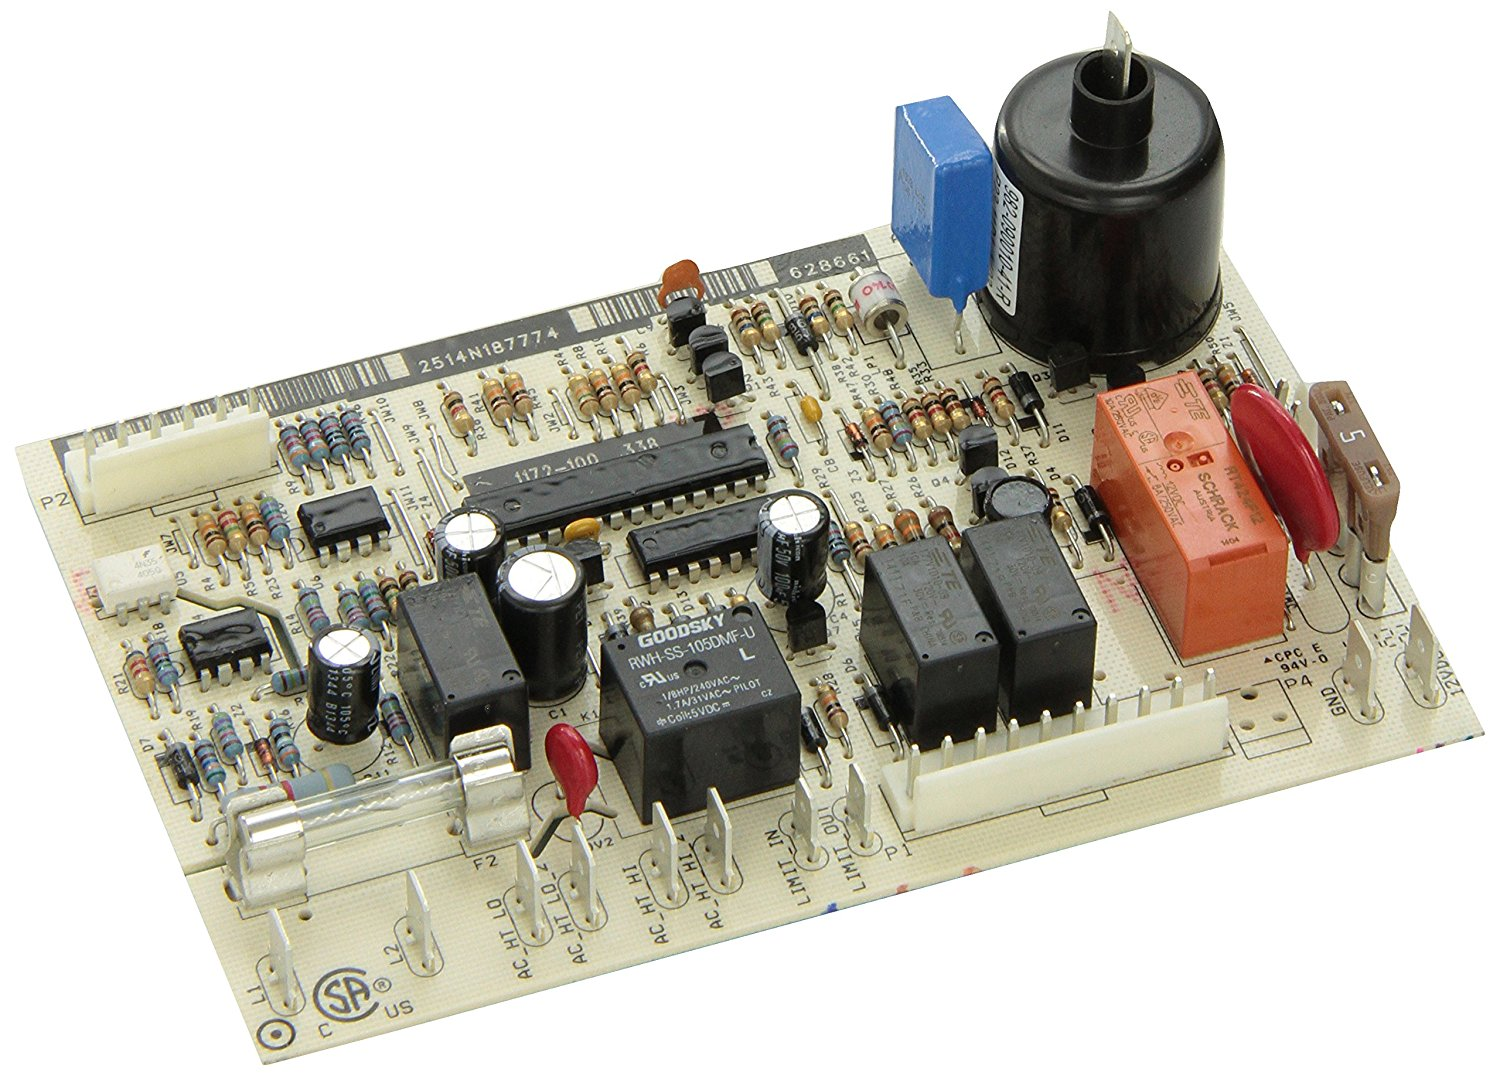 Norcold Refrigerator Power Replacement Circuit Board 11299 Alarm